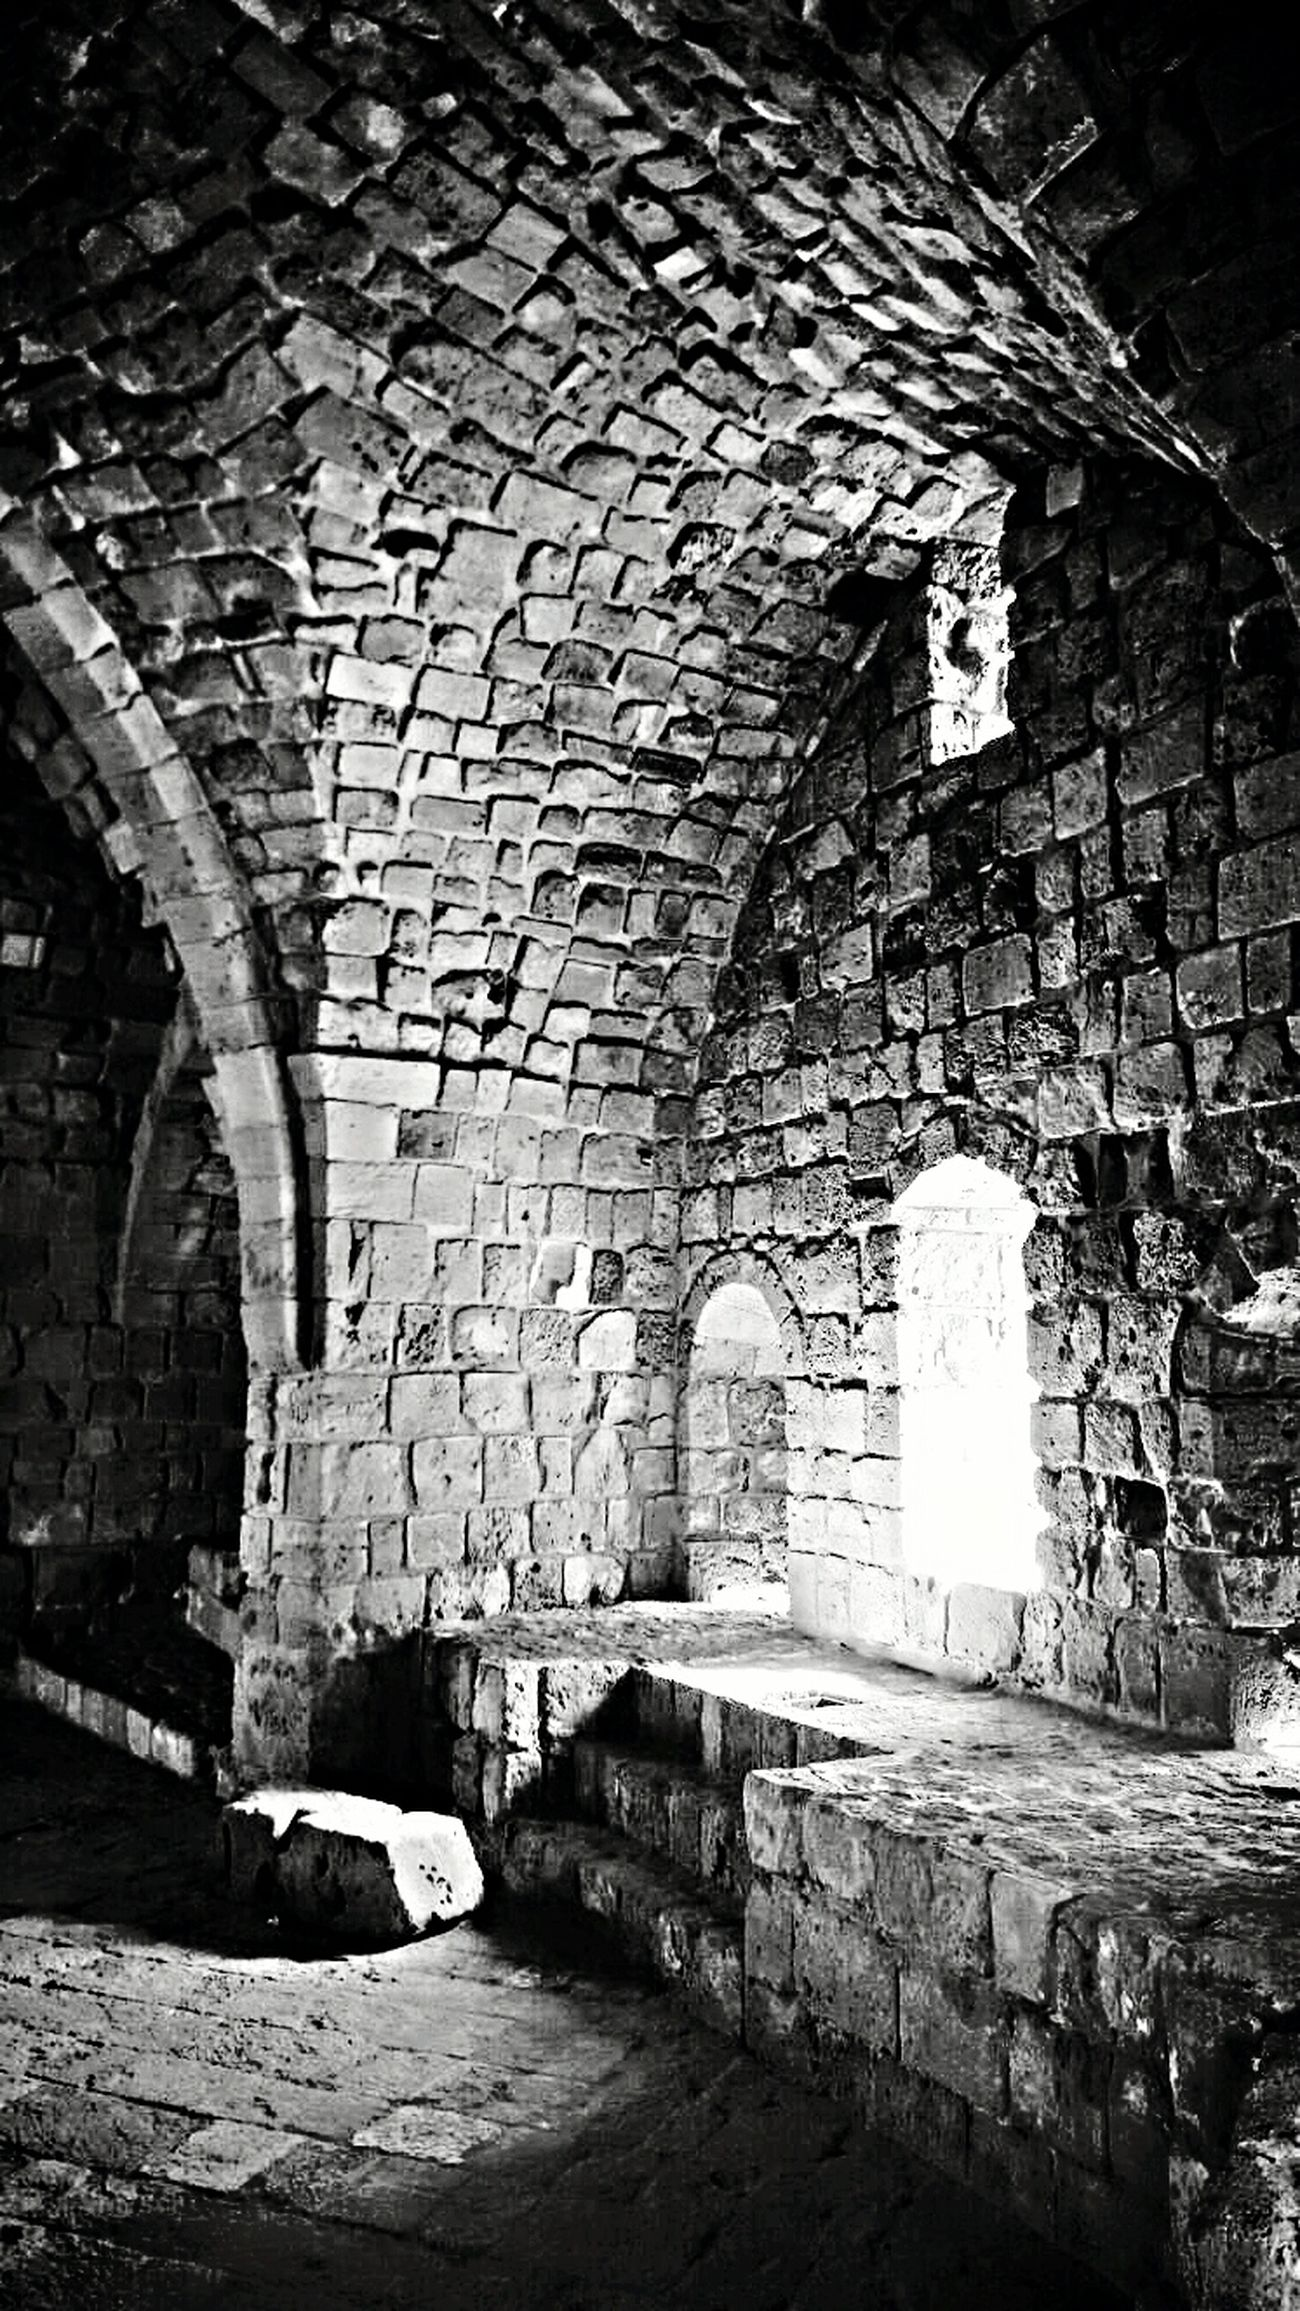 Castle. Street Photography OldButGold Eyephotography Mypictures Black & White EyeEm Best Shots Dreaming Anything! EyeEm Nature Lover Nice Photo Blackandwhite Photography Black Old EyeEm Gallery EMAzing Blackandwhite Capture The Moment Light And Shadow Photgraphy Bulding Old Buildings Old Past Nice Pic Castle